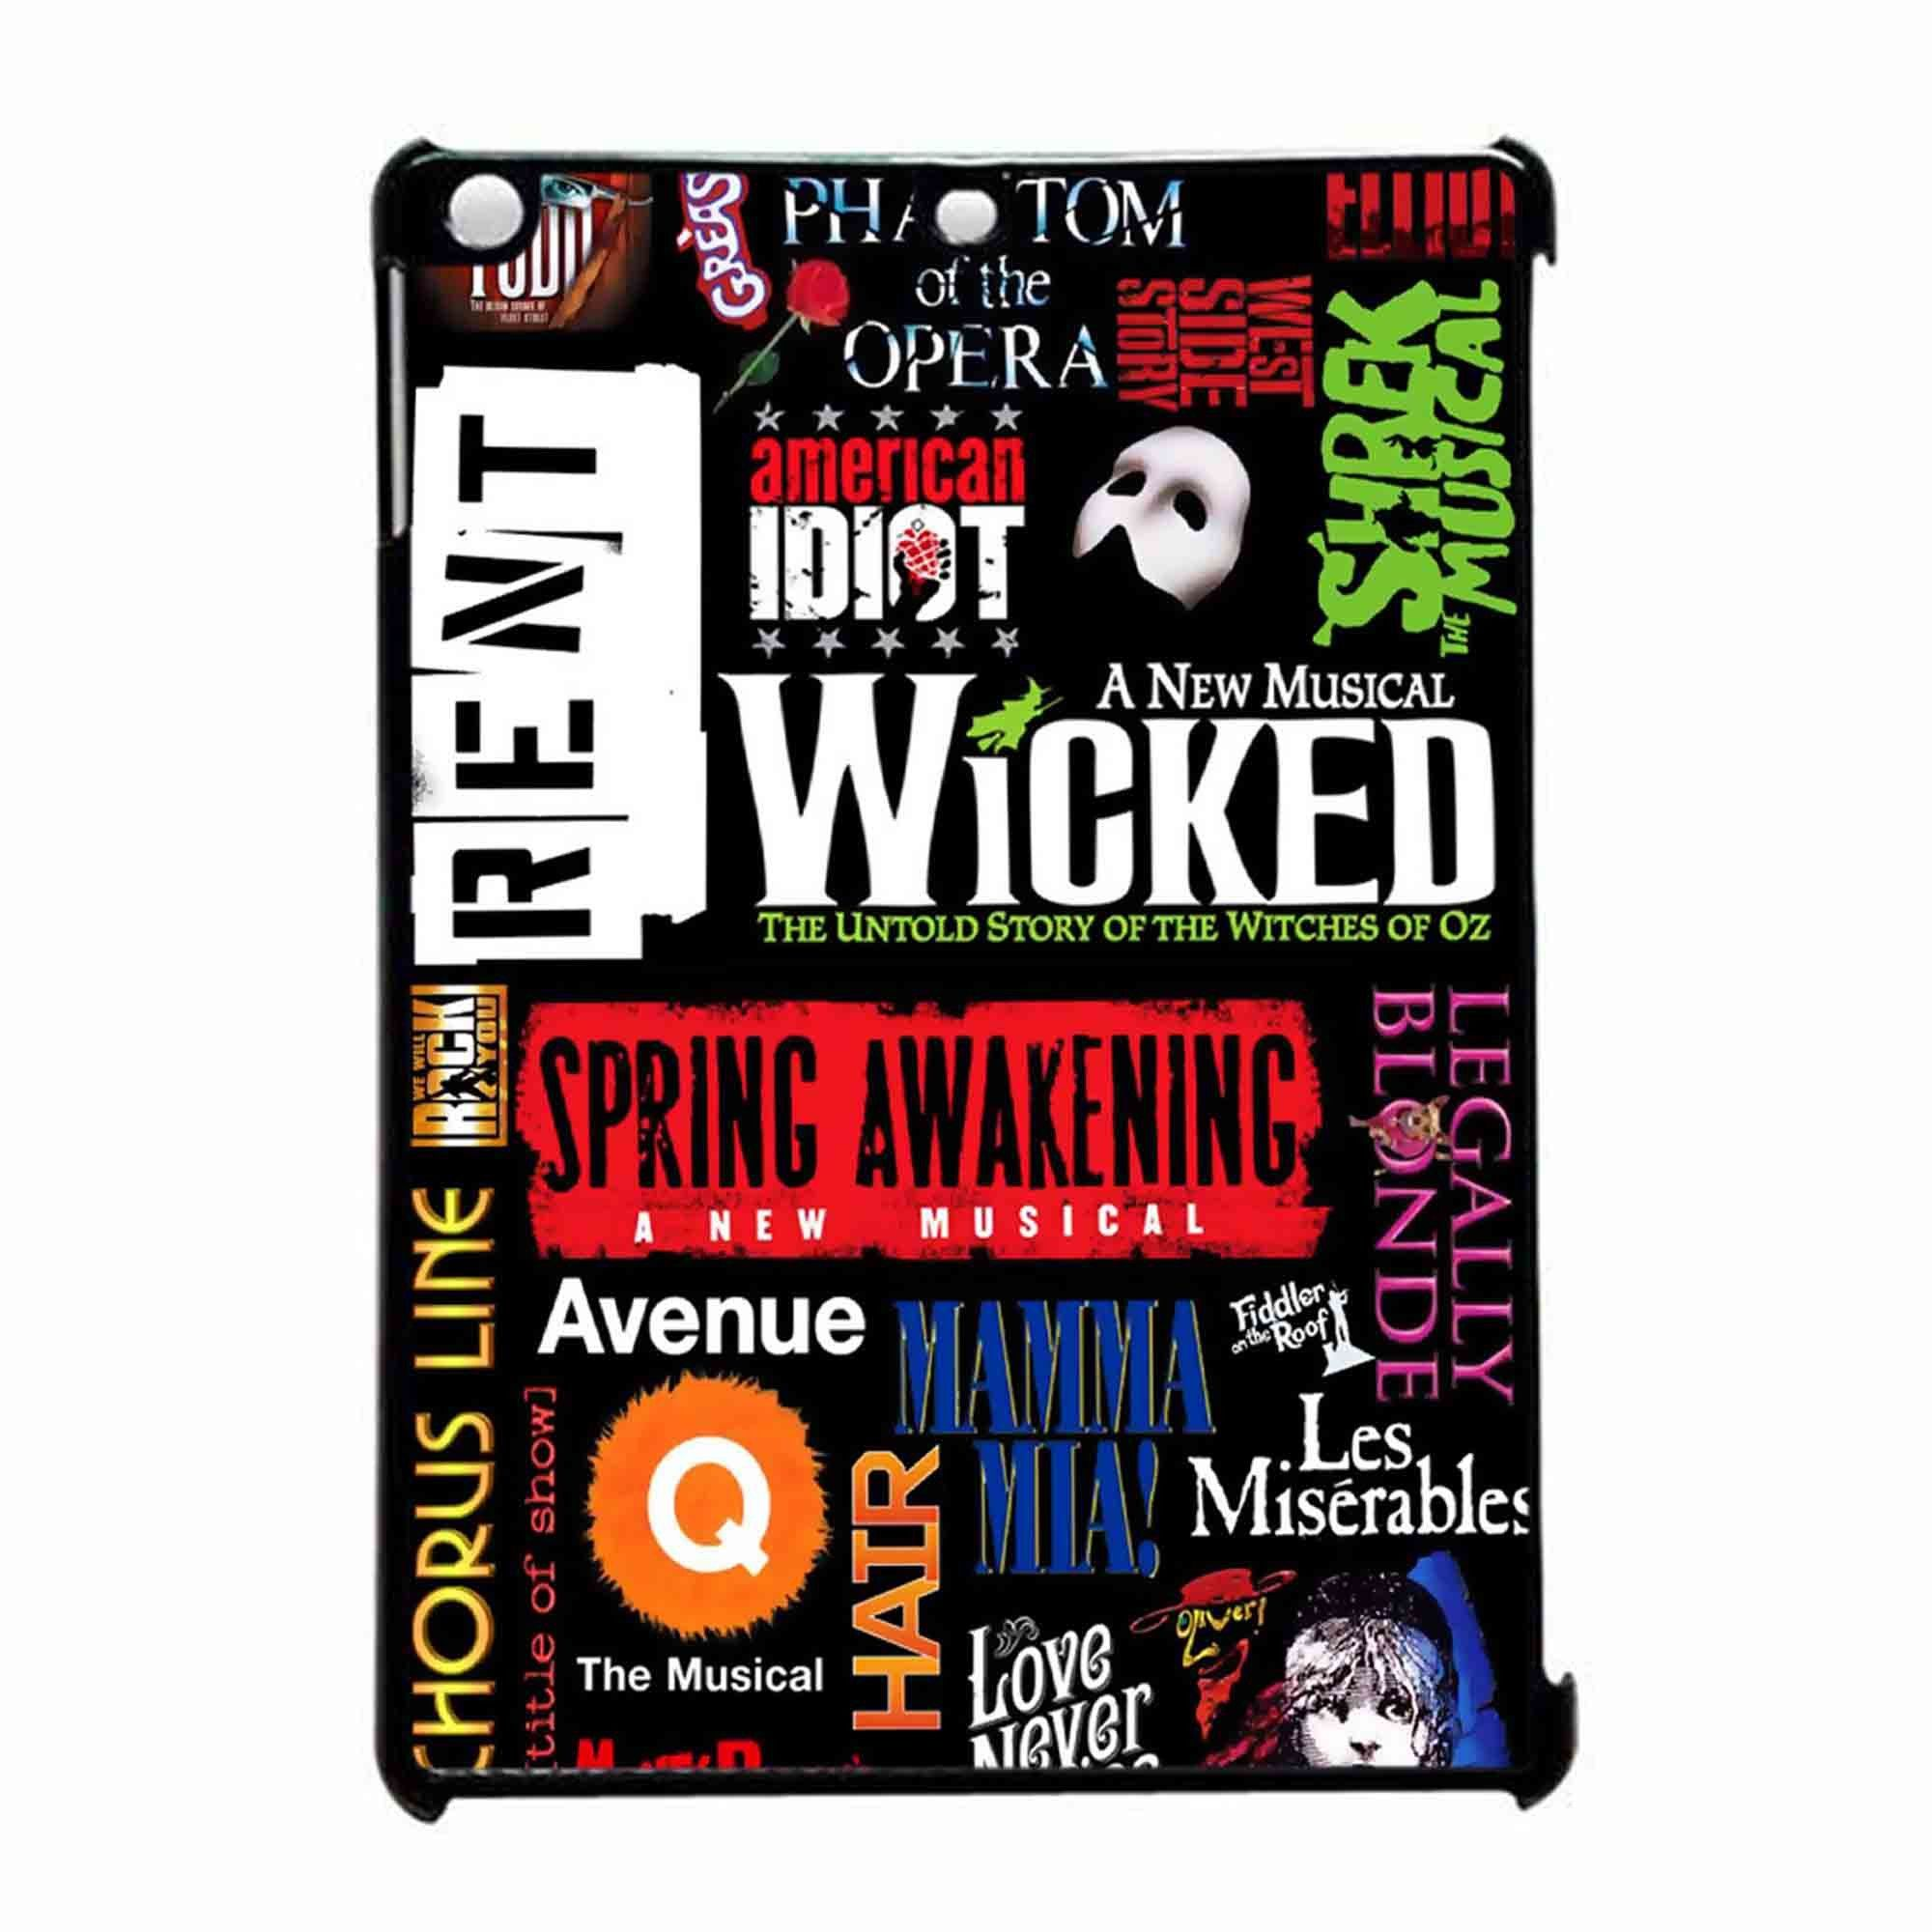 famous broadway musiacal plays collage ipad air case | theatre in